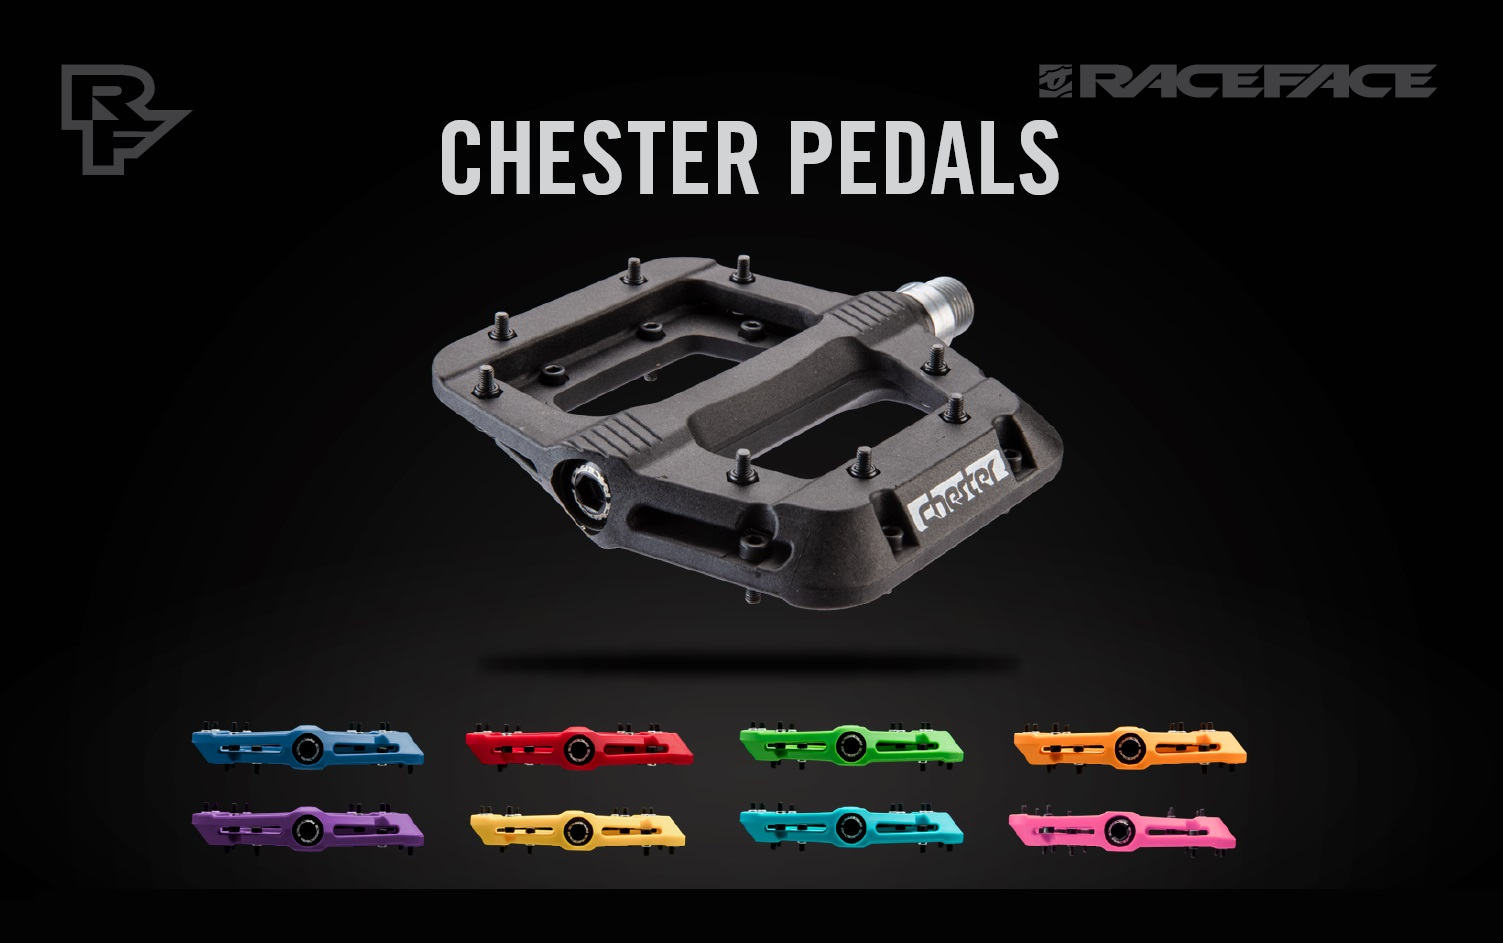 Race Face Chester pedals